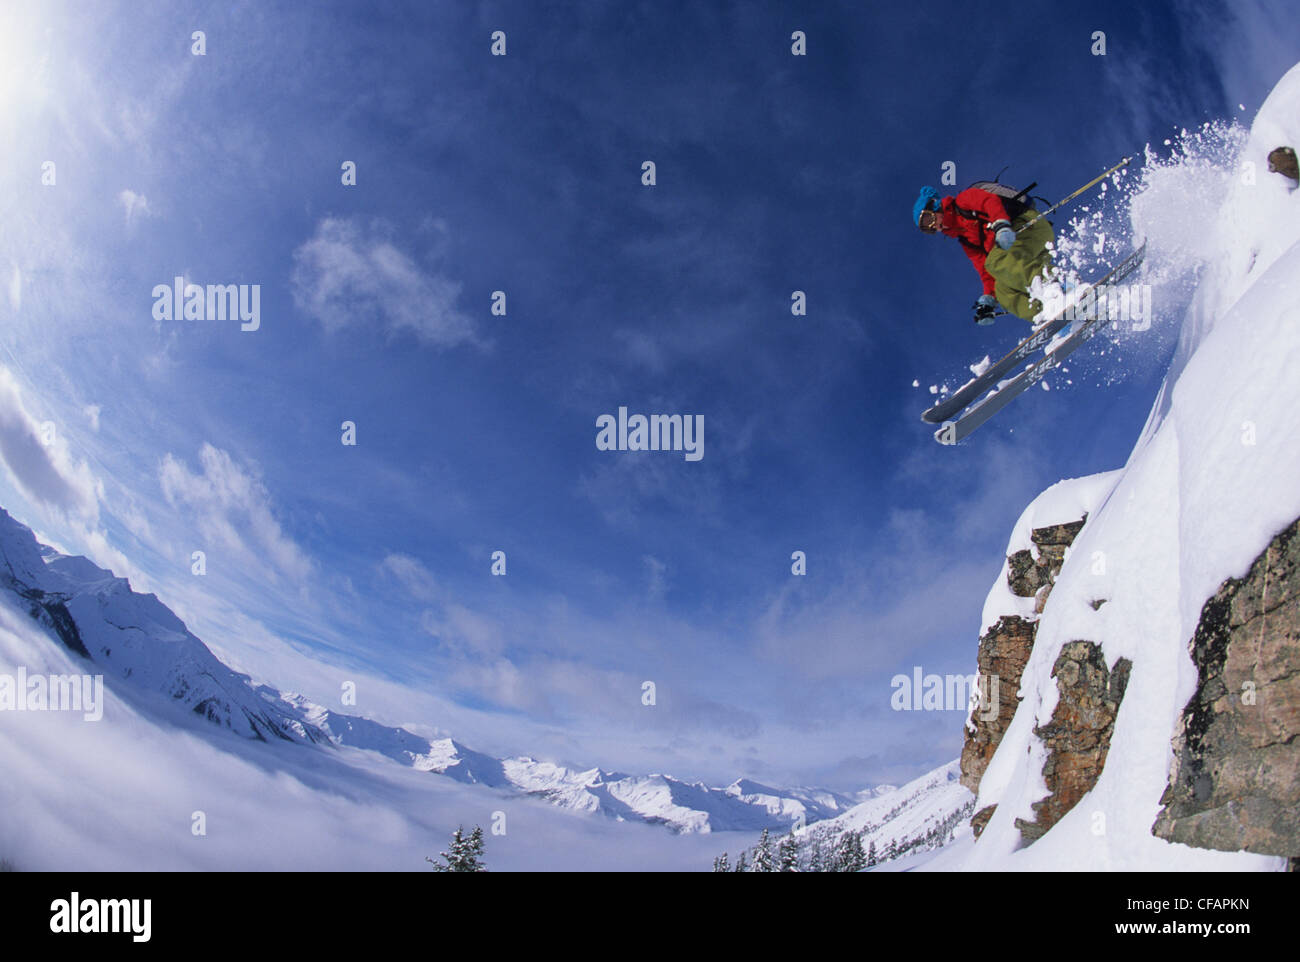 A female skier jumping a cliff in the backcountry of Kickinghorse Resort, Purcell Range, Golden, British Columbia, - Stock Image